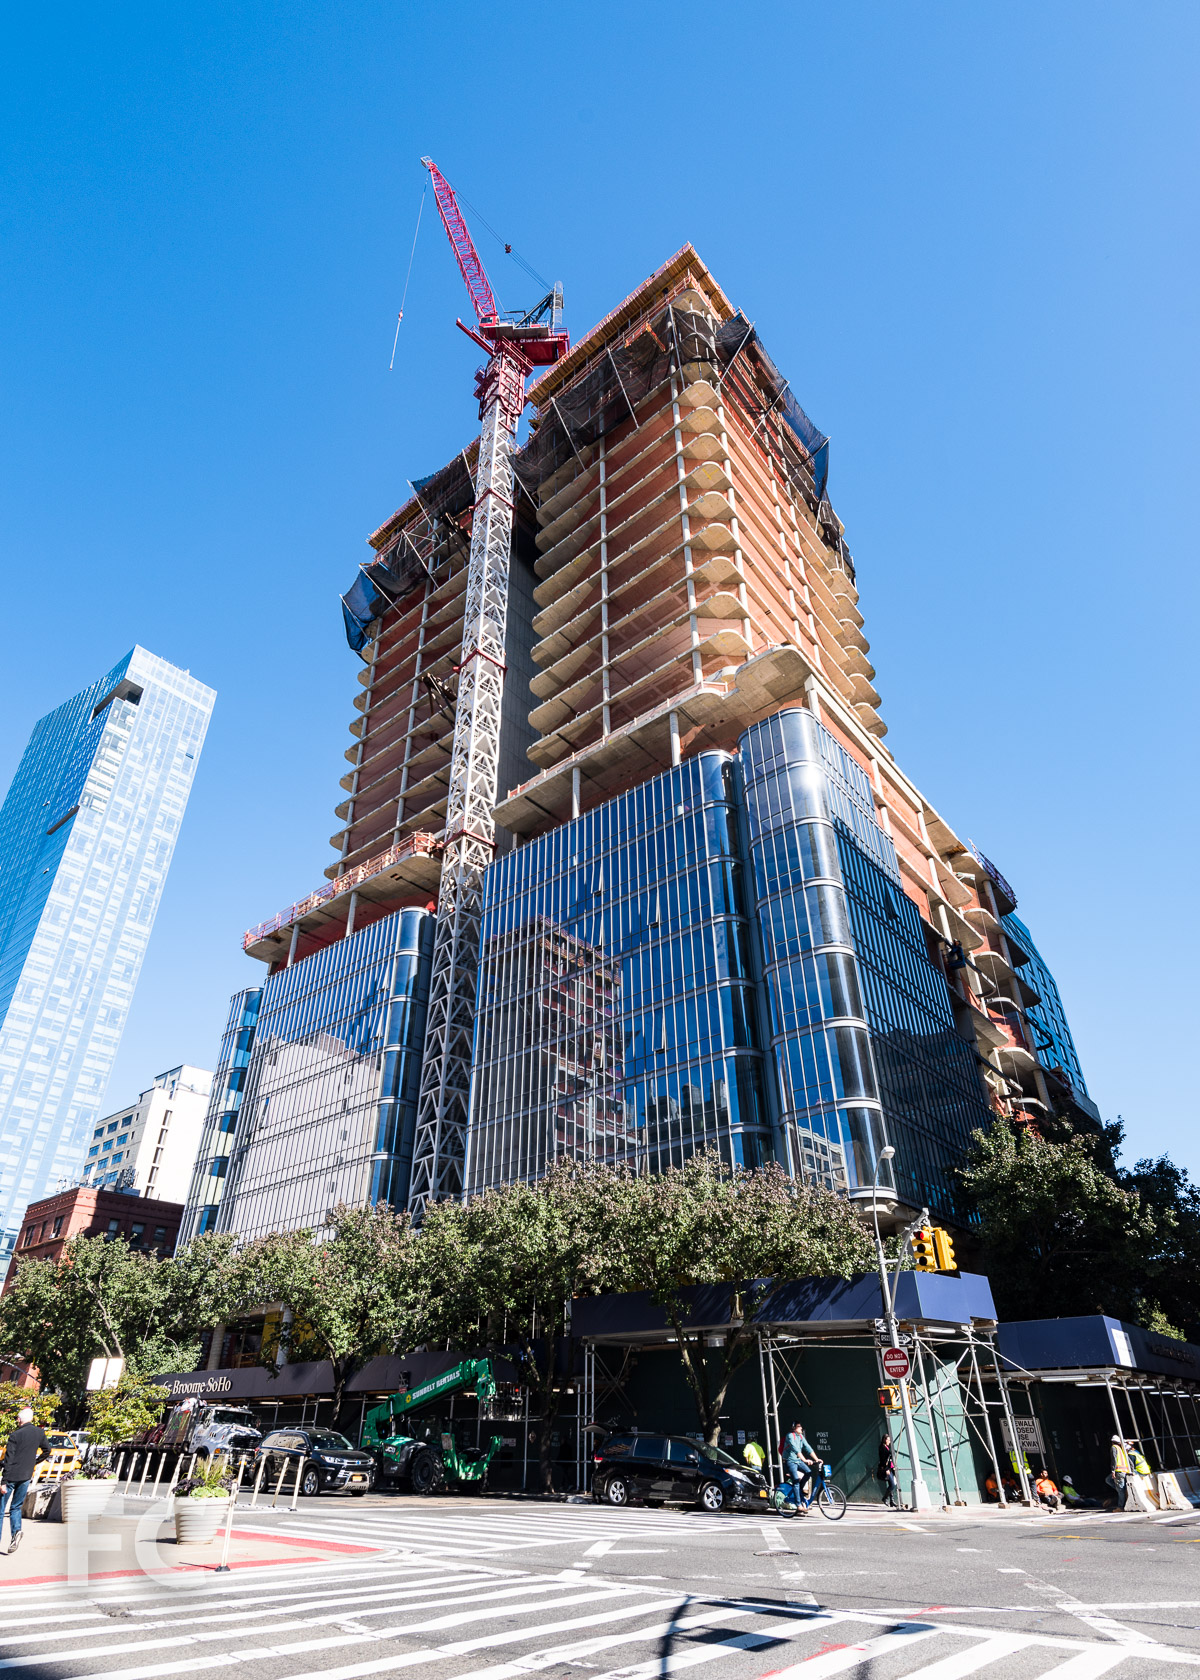 Renzo Piano\u0027s 565 Broome Soho is getting its glass facade - Curbed NY